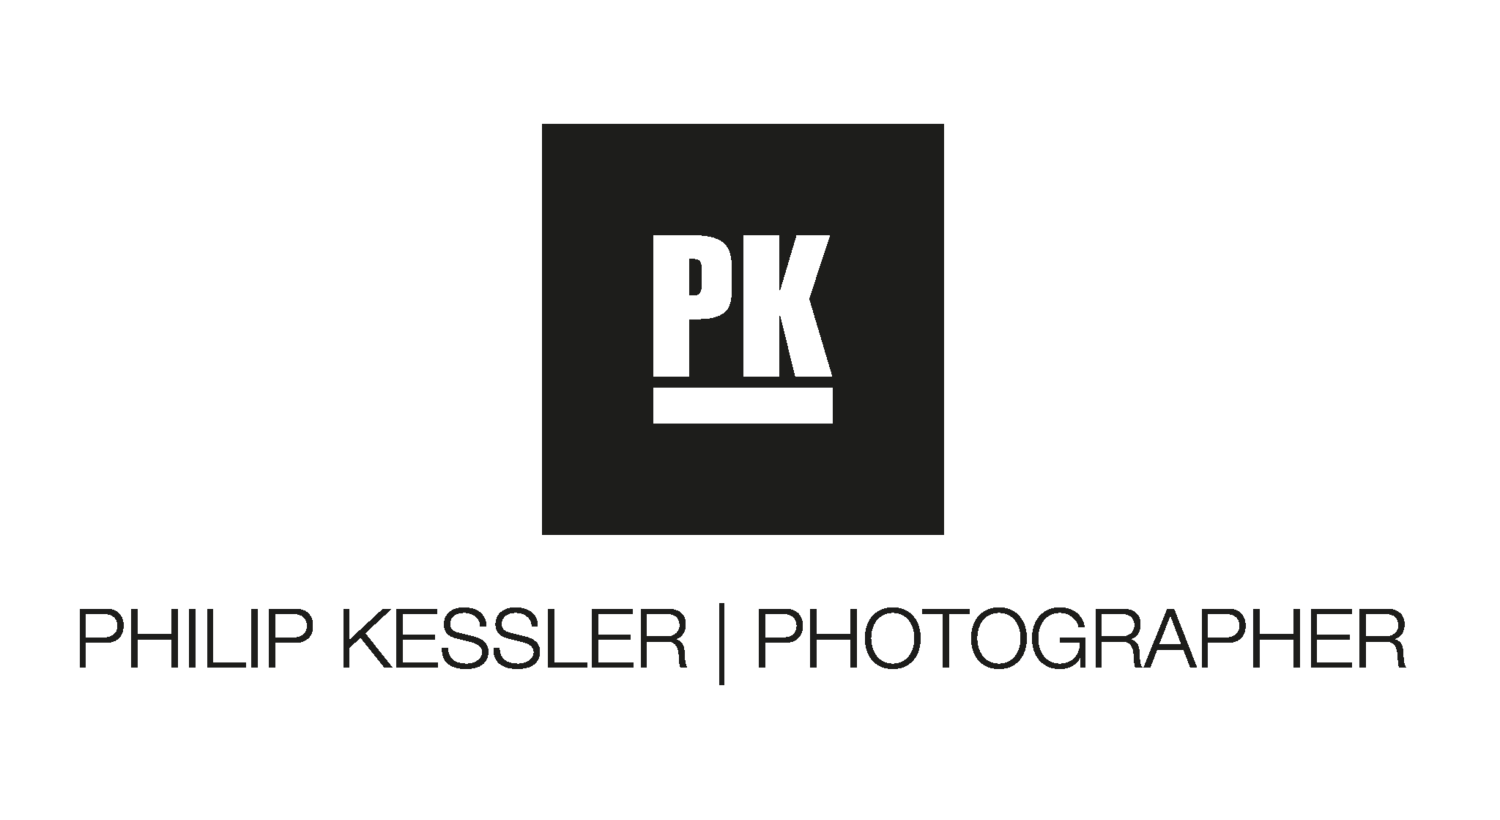 Philip Kessler Photography